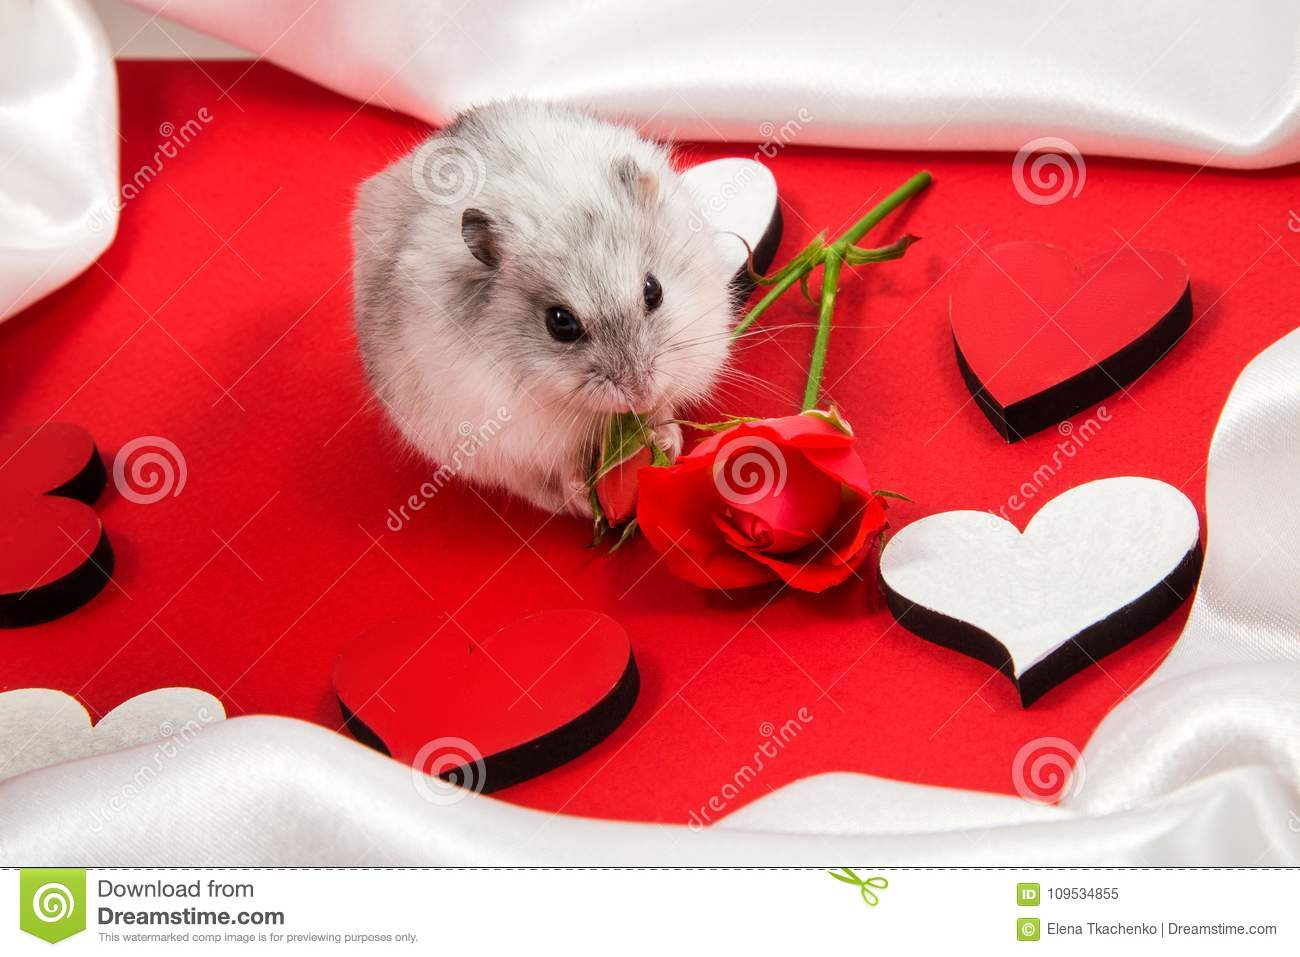 Postcard To The Day Of The Holy Valentine With A Hamster Giving A